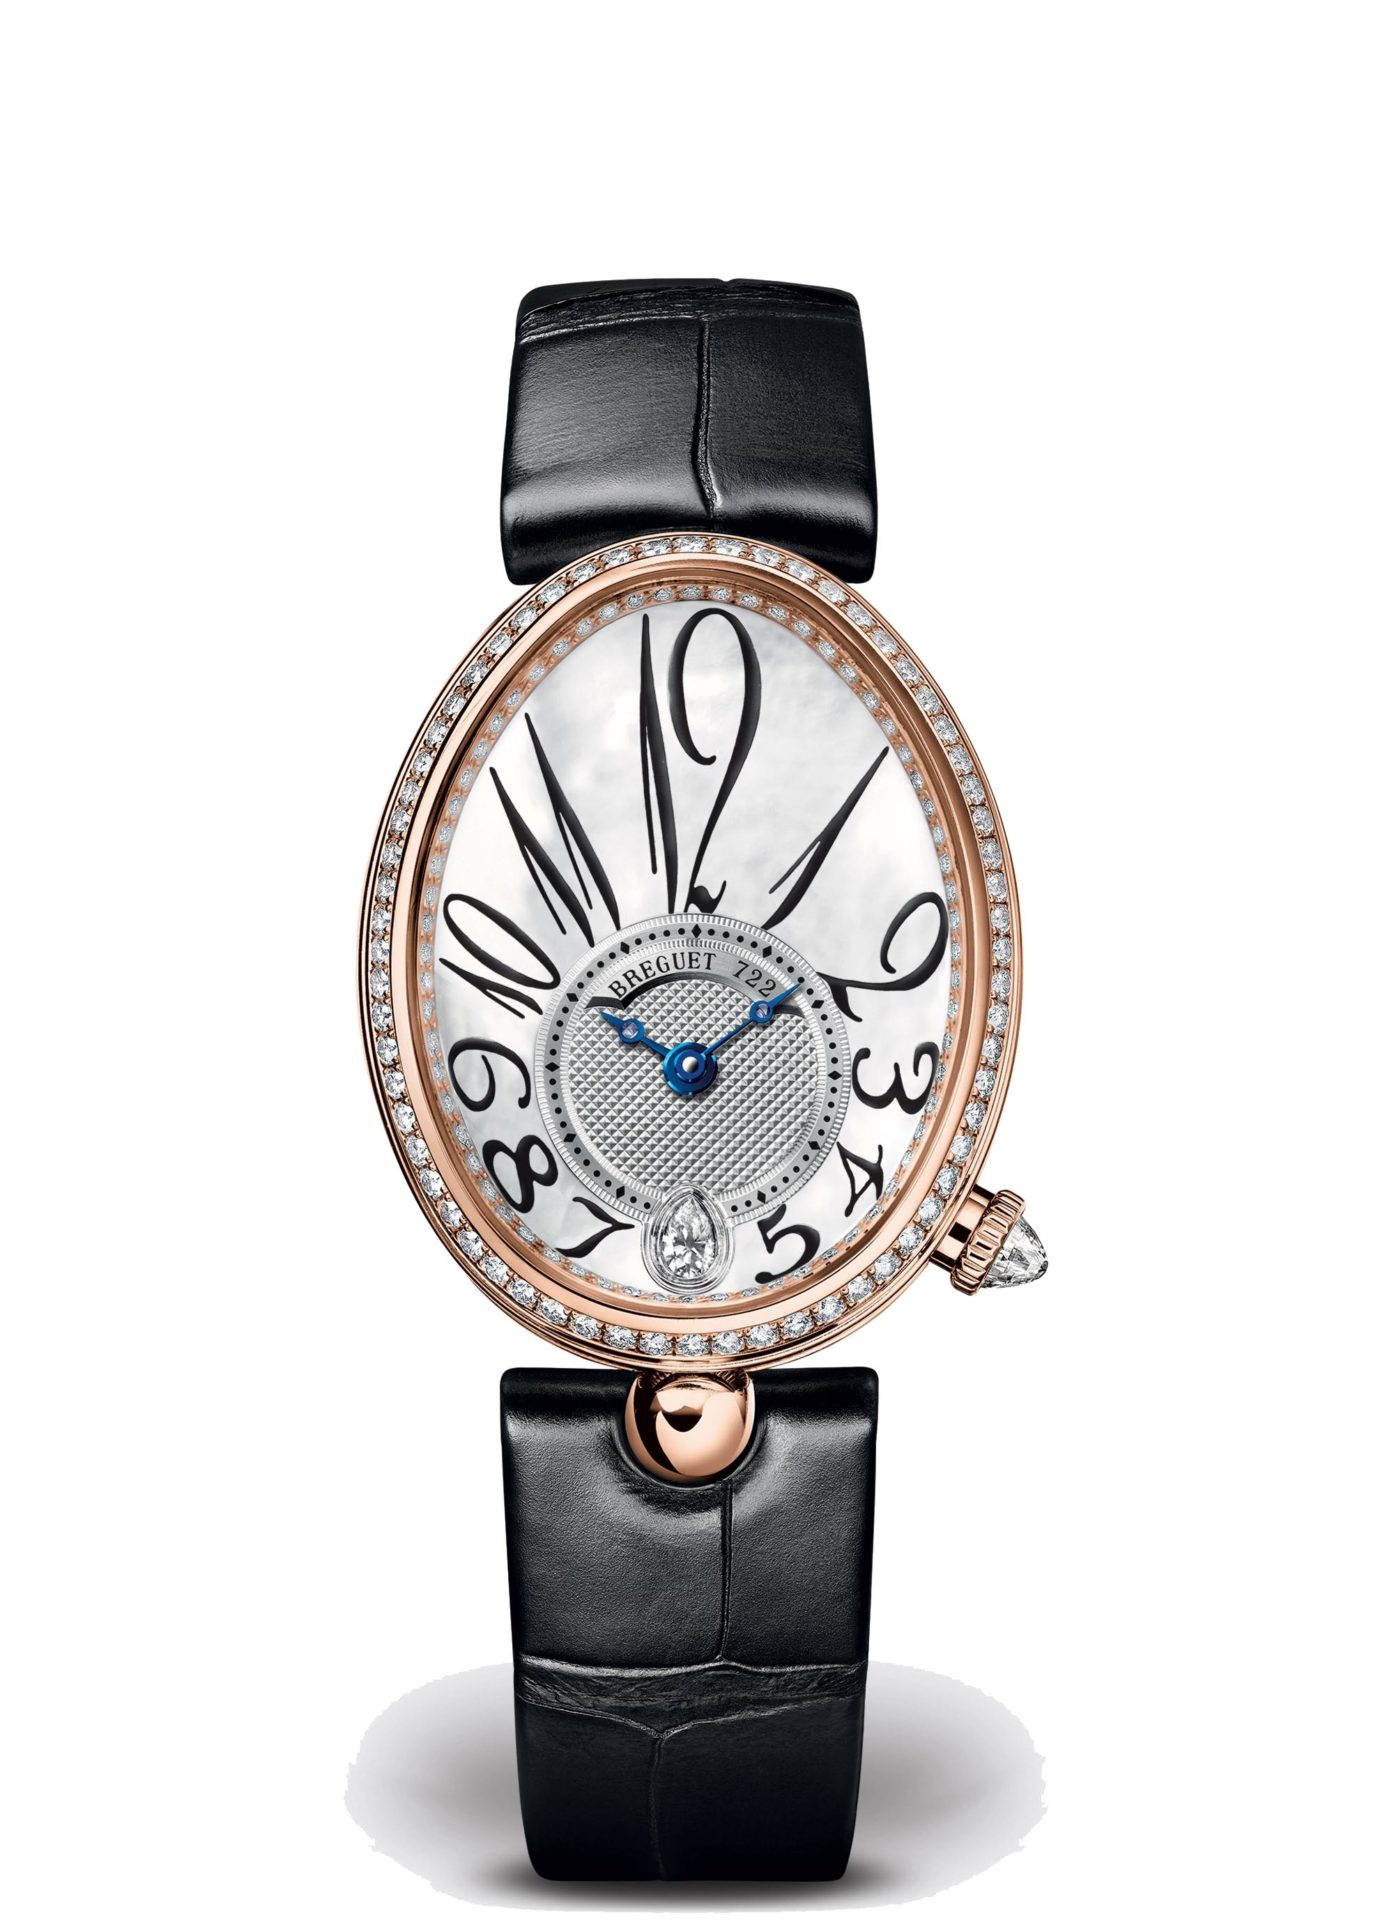 Breguet-Reine-de-Naples-8918-Hall-of-Time-8918BR-58-964D00D